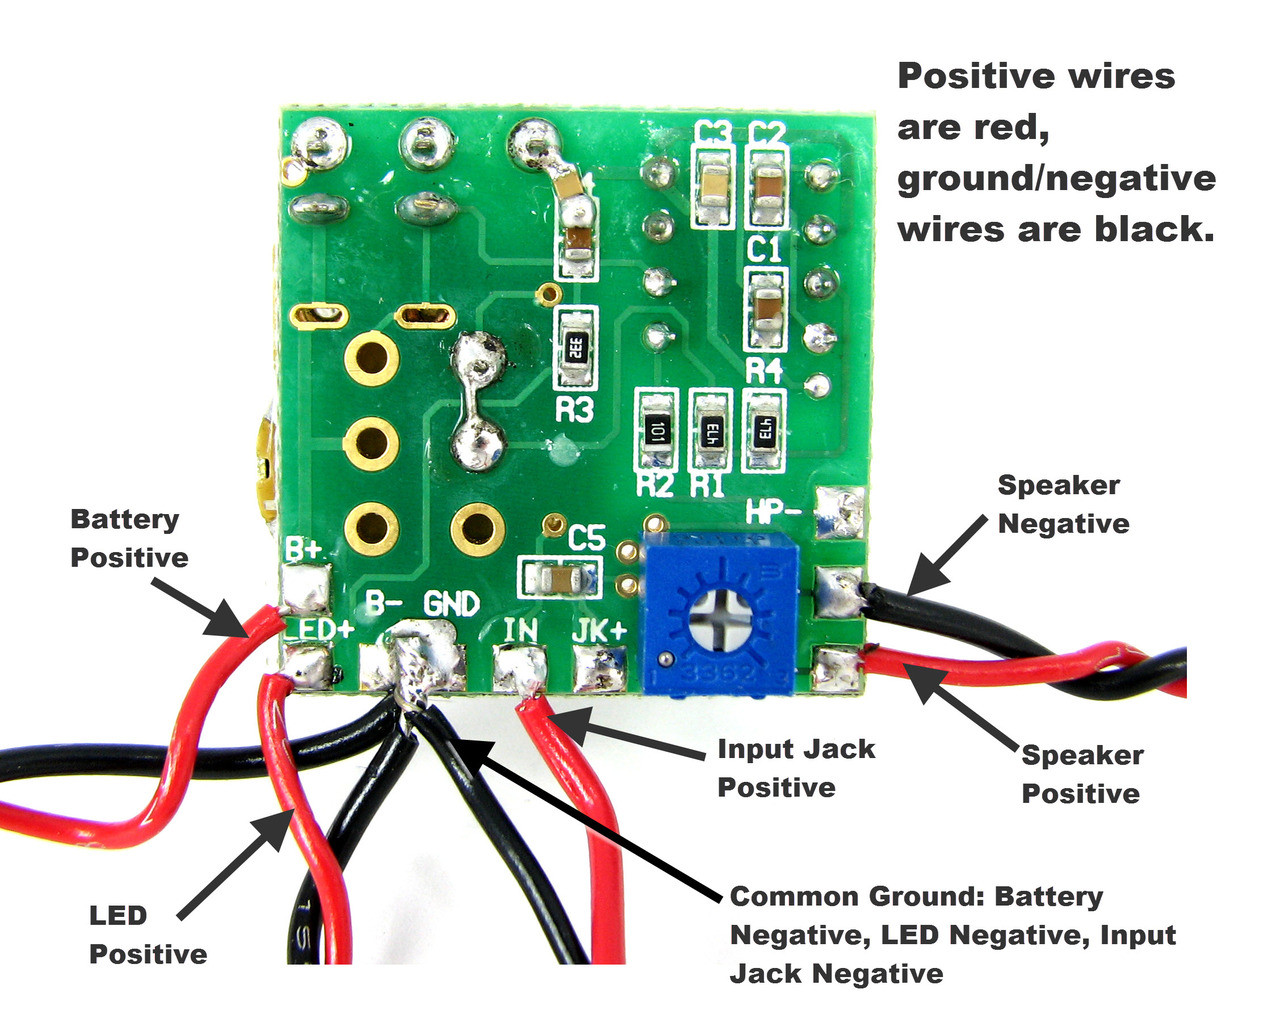 medium resolution of 1 4 jack wiring to circuit board wiring diagrams wd 1 4 plug wiring 1 4 inch audio jack wiring